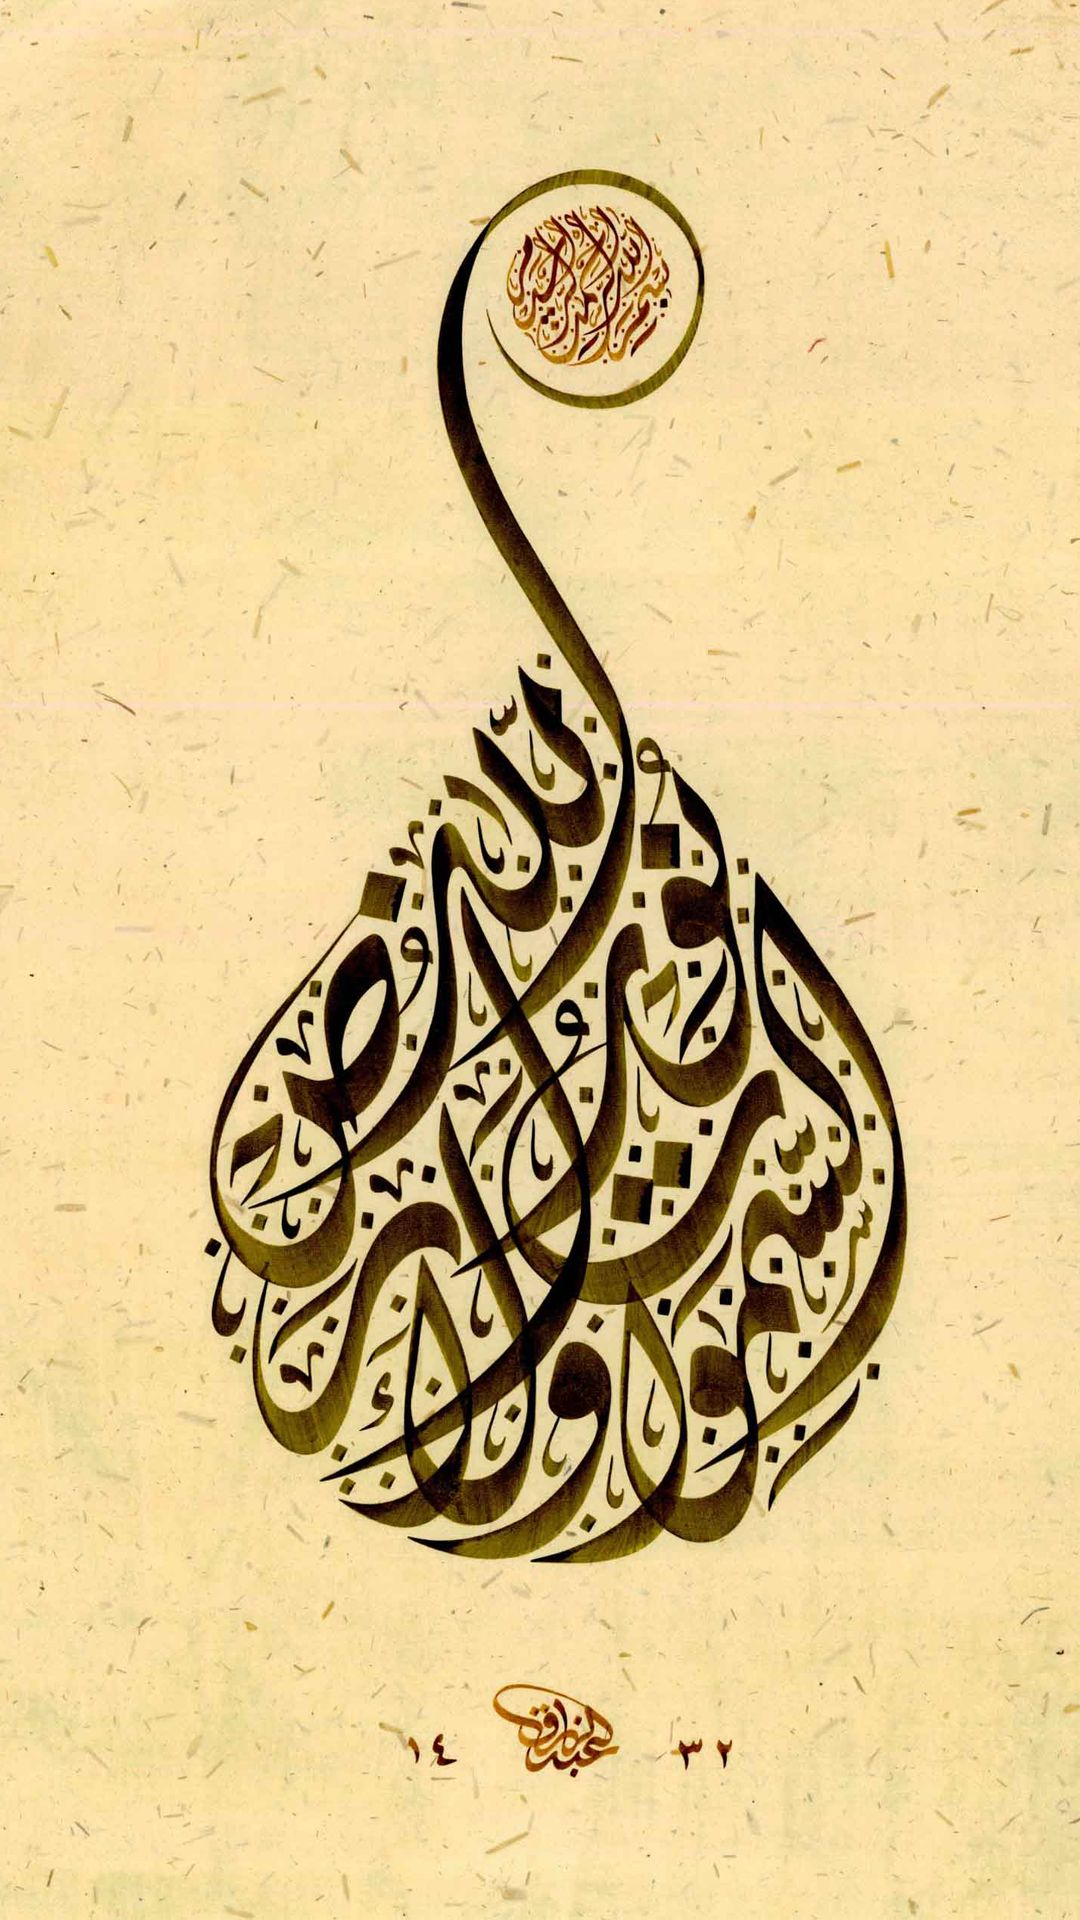 Best Islamic Wallpaper For 5 Inch Mobile Phone 3 Of 7 Allah And Bismillah Calligraphy Hd Wallpapers Wallpapers Download High Resolution Wallpapers Bismillah Calligraphy Islamic Caligraphy Islamic Wallpaper